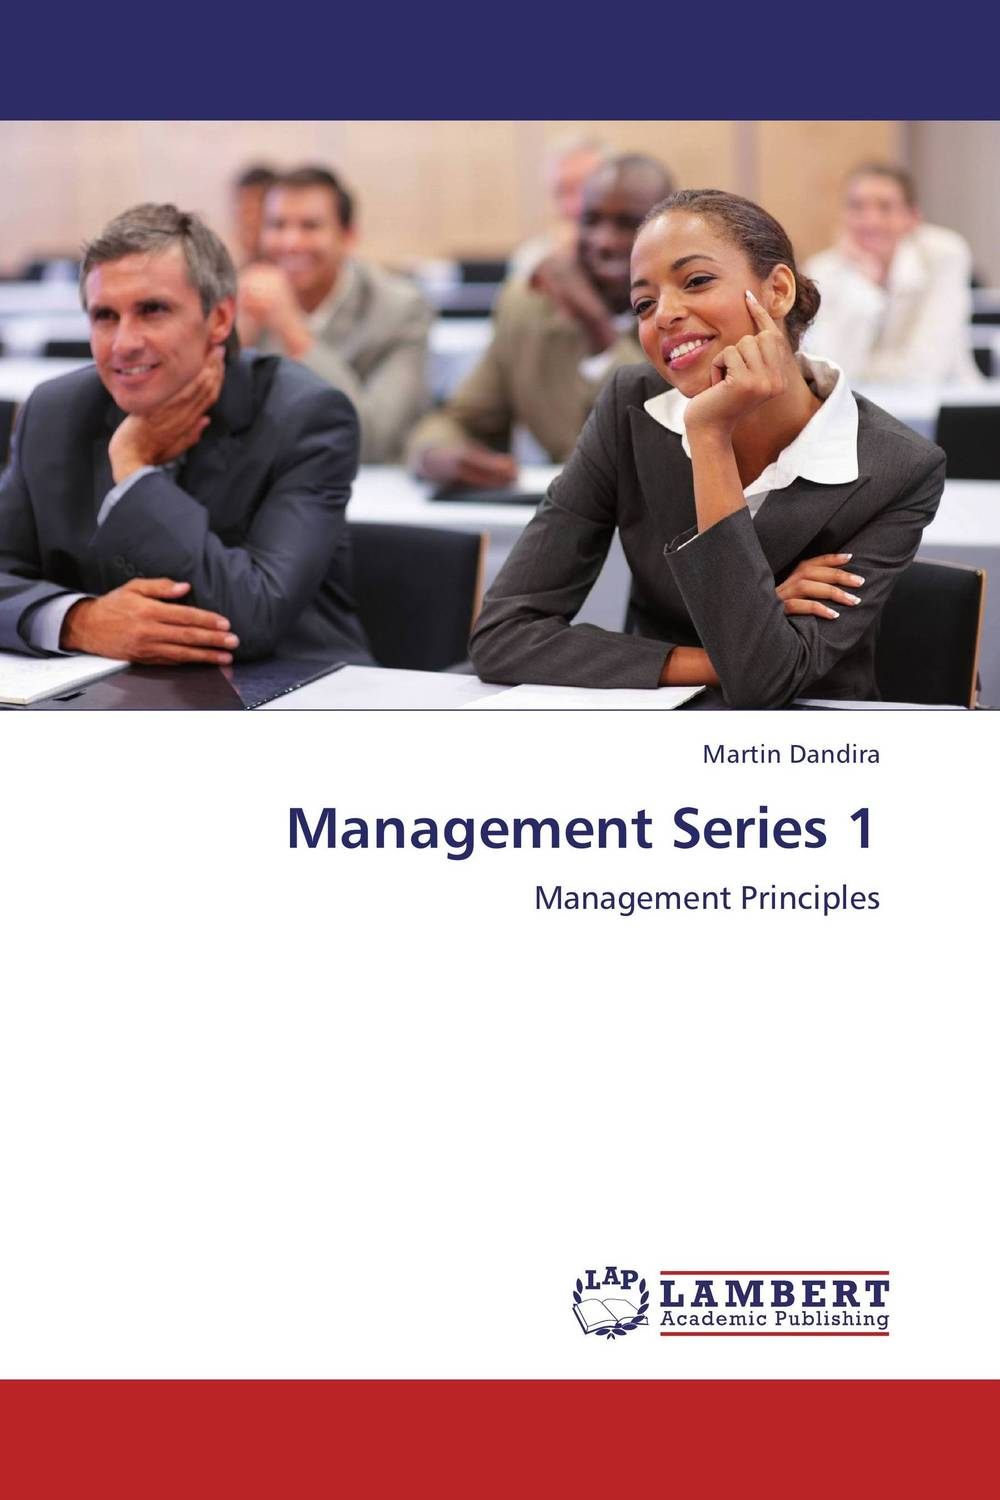 Management Series 1 anwaar ali gondal business and management in differnet regions